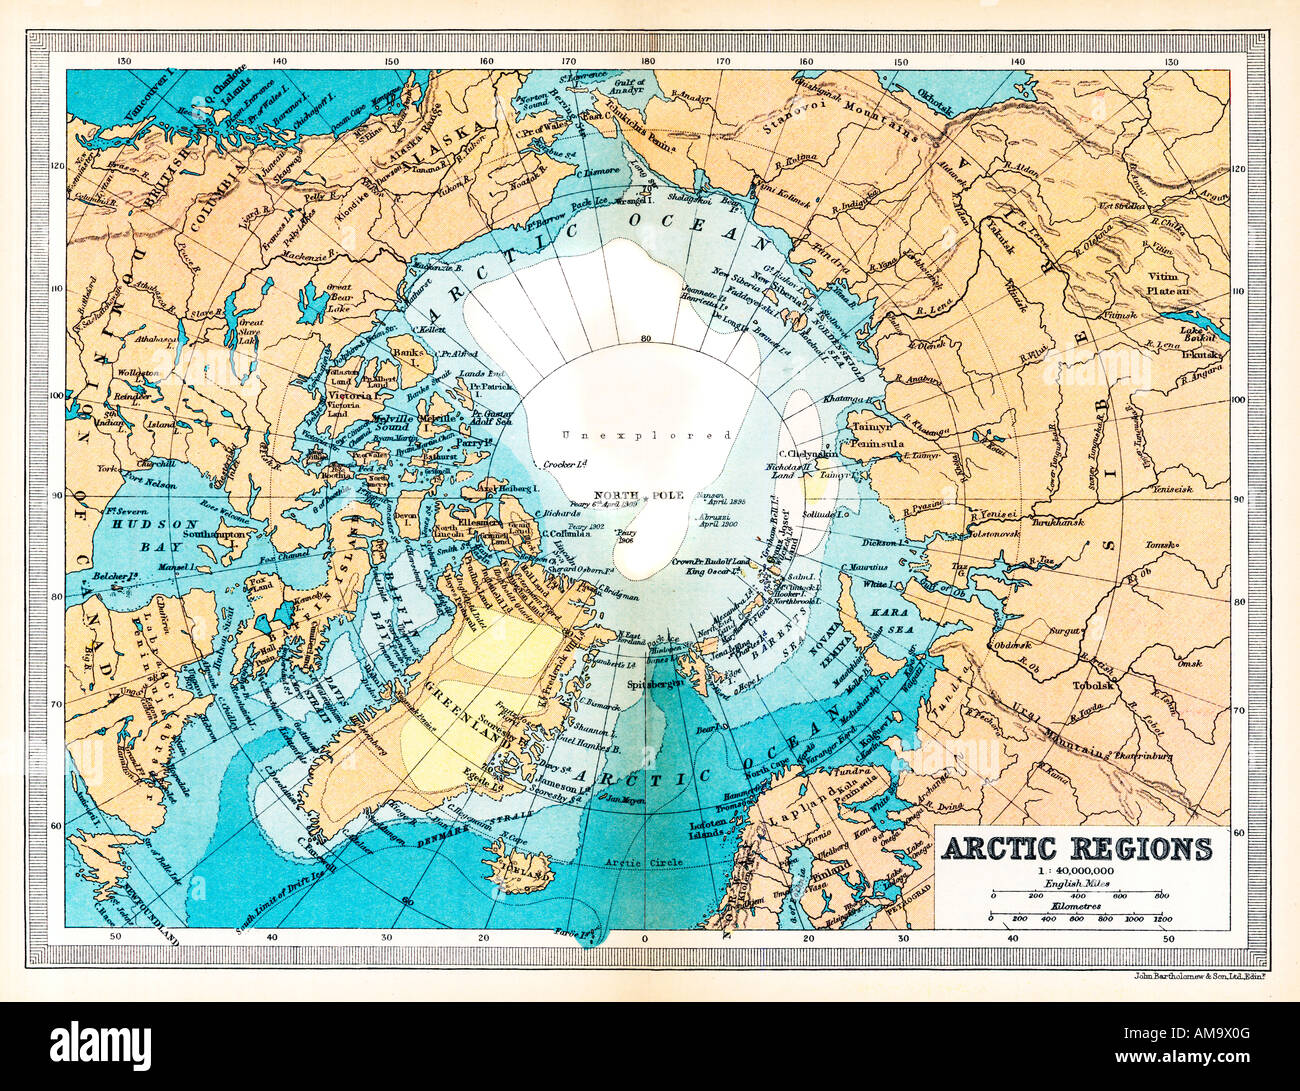 North Pole Map The Arctic 1922 Map of the North Pole and surrounding area Stock  North Pole Map